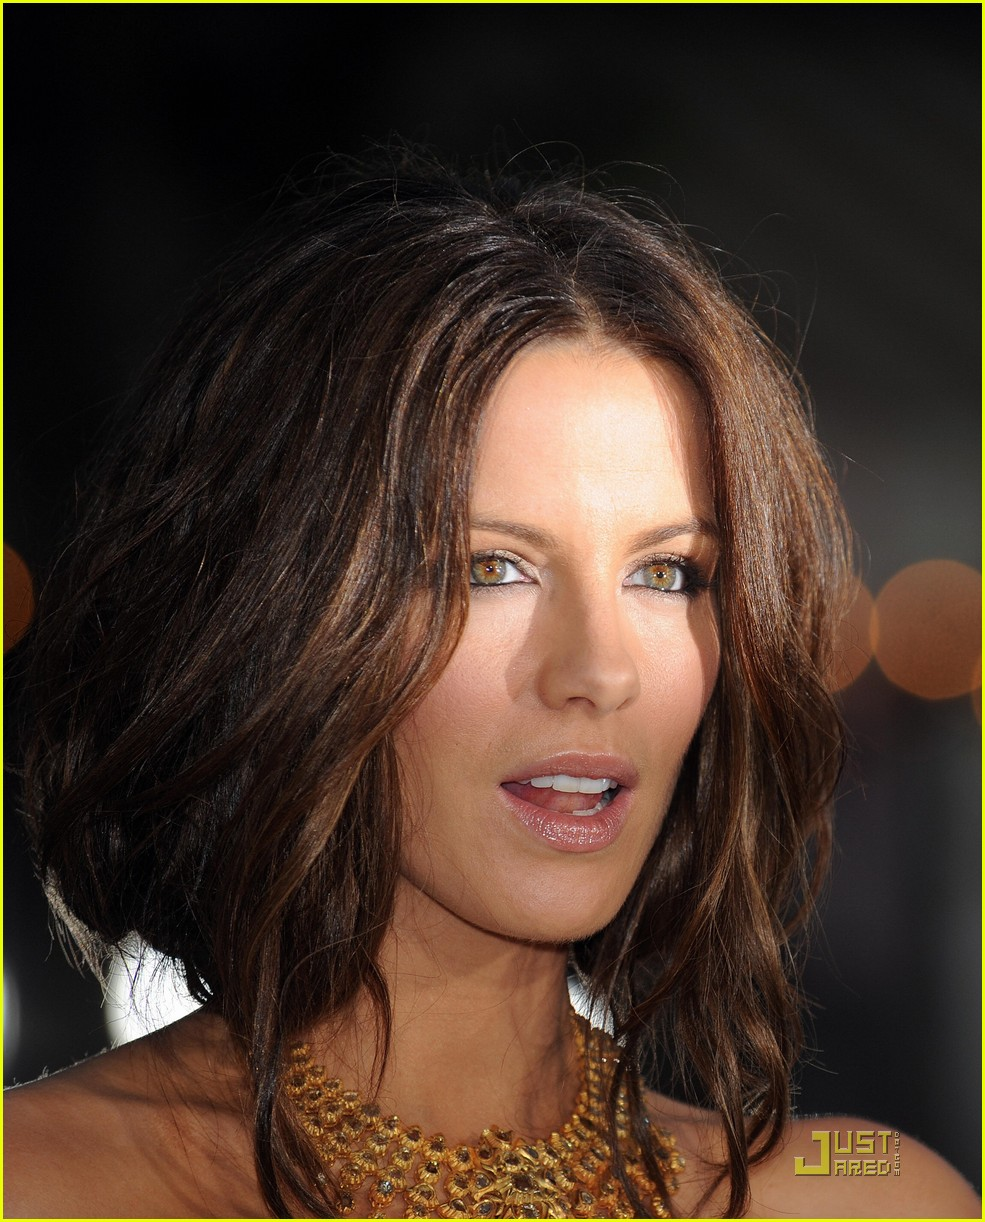 Kate Beckinsale: Blackout for Whiteout Kate Beckinsale